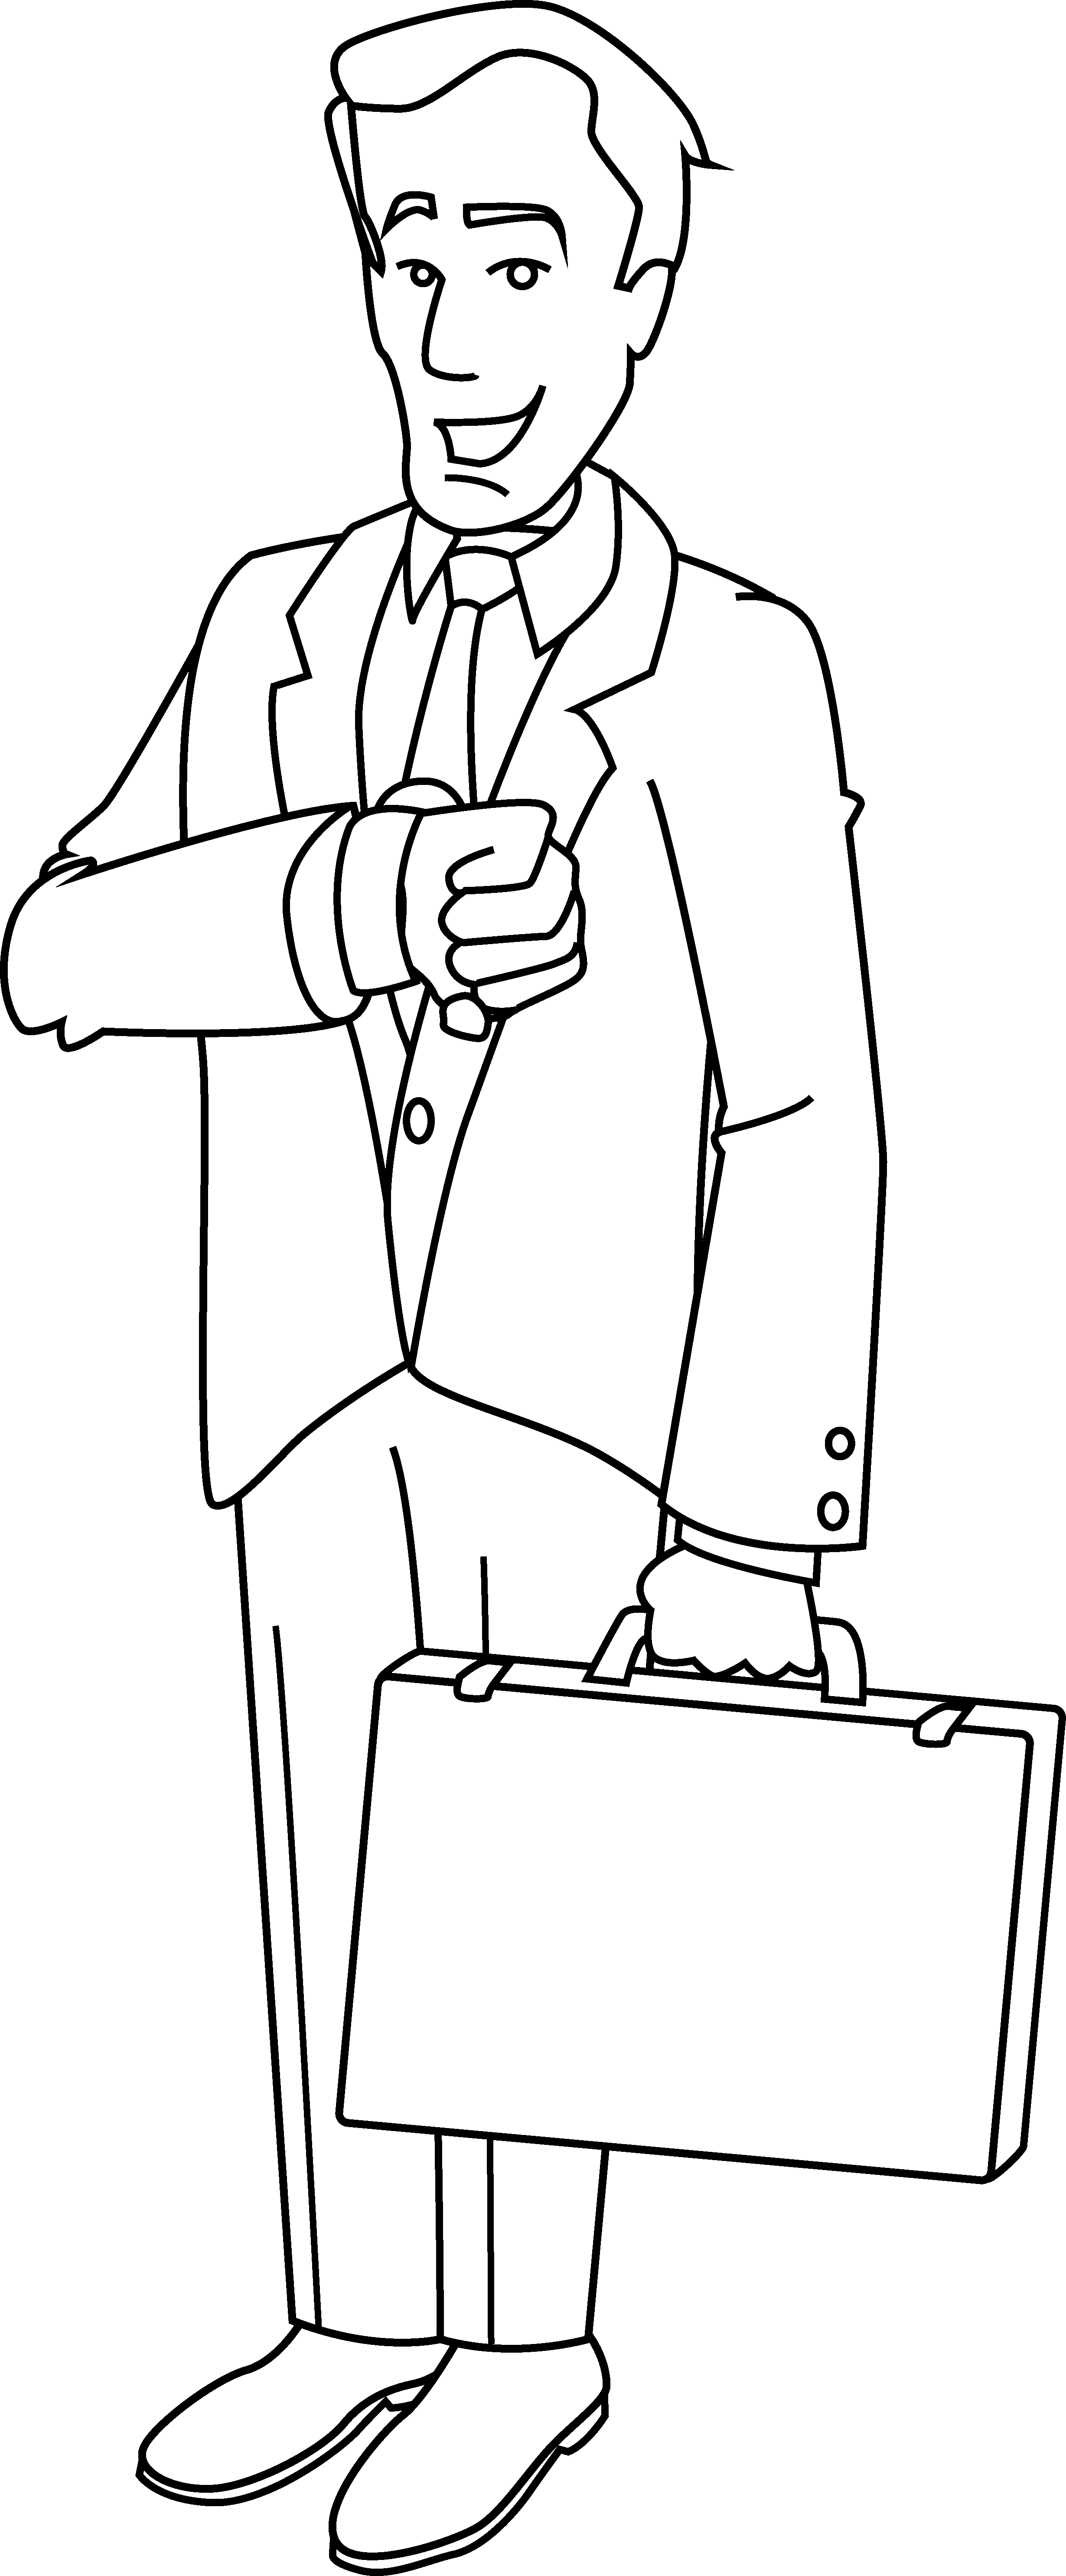 coloring page of a man free printable gingerbread man coloring pages for kids page coloring man of a